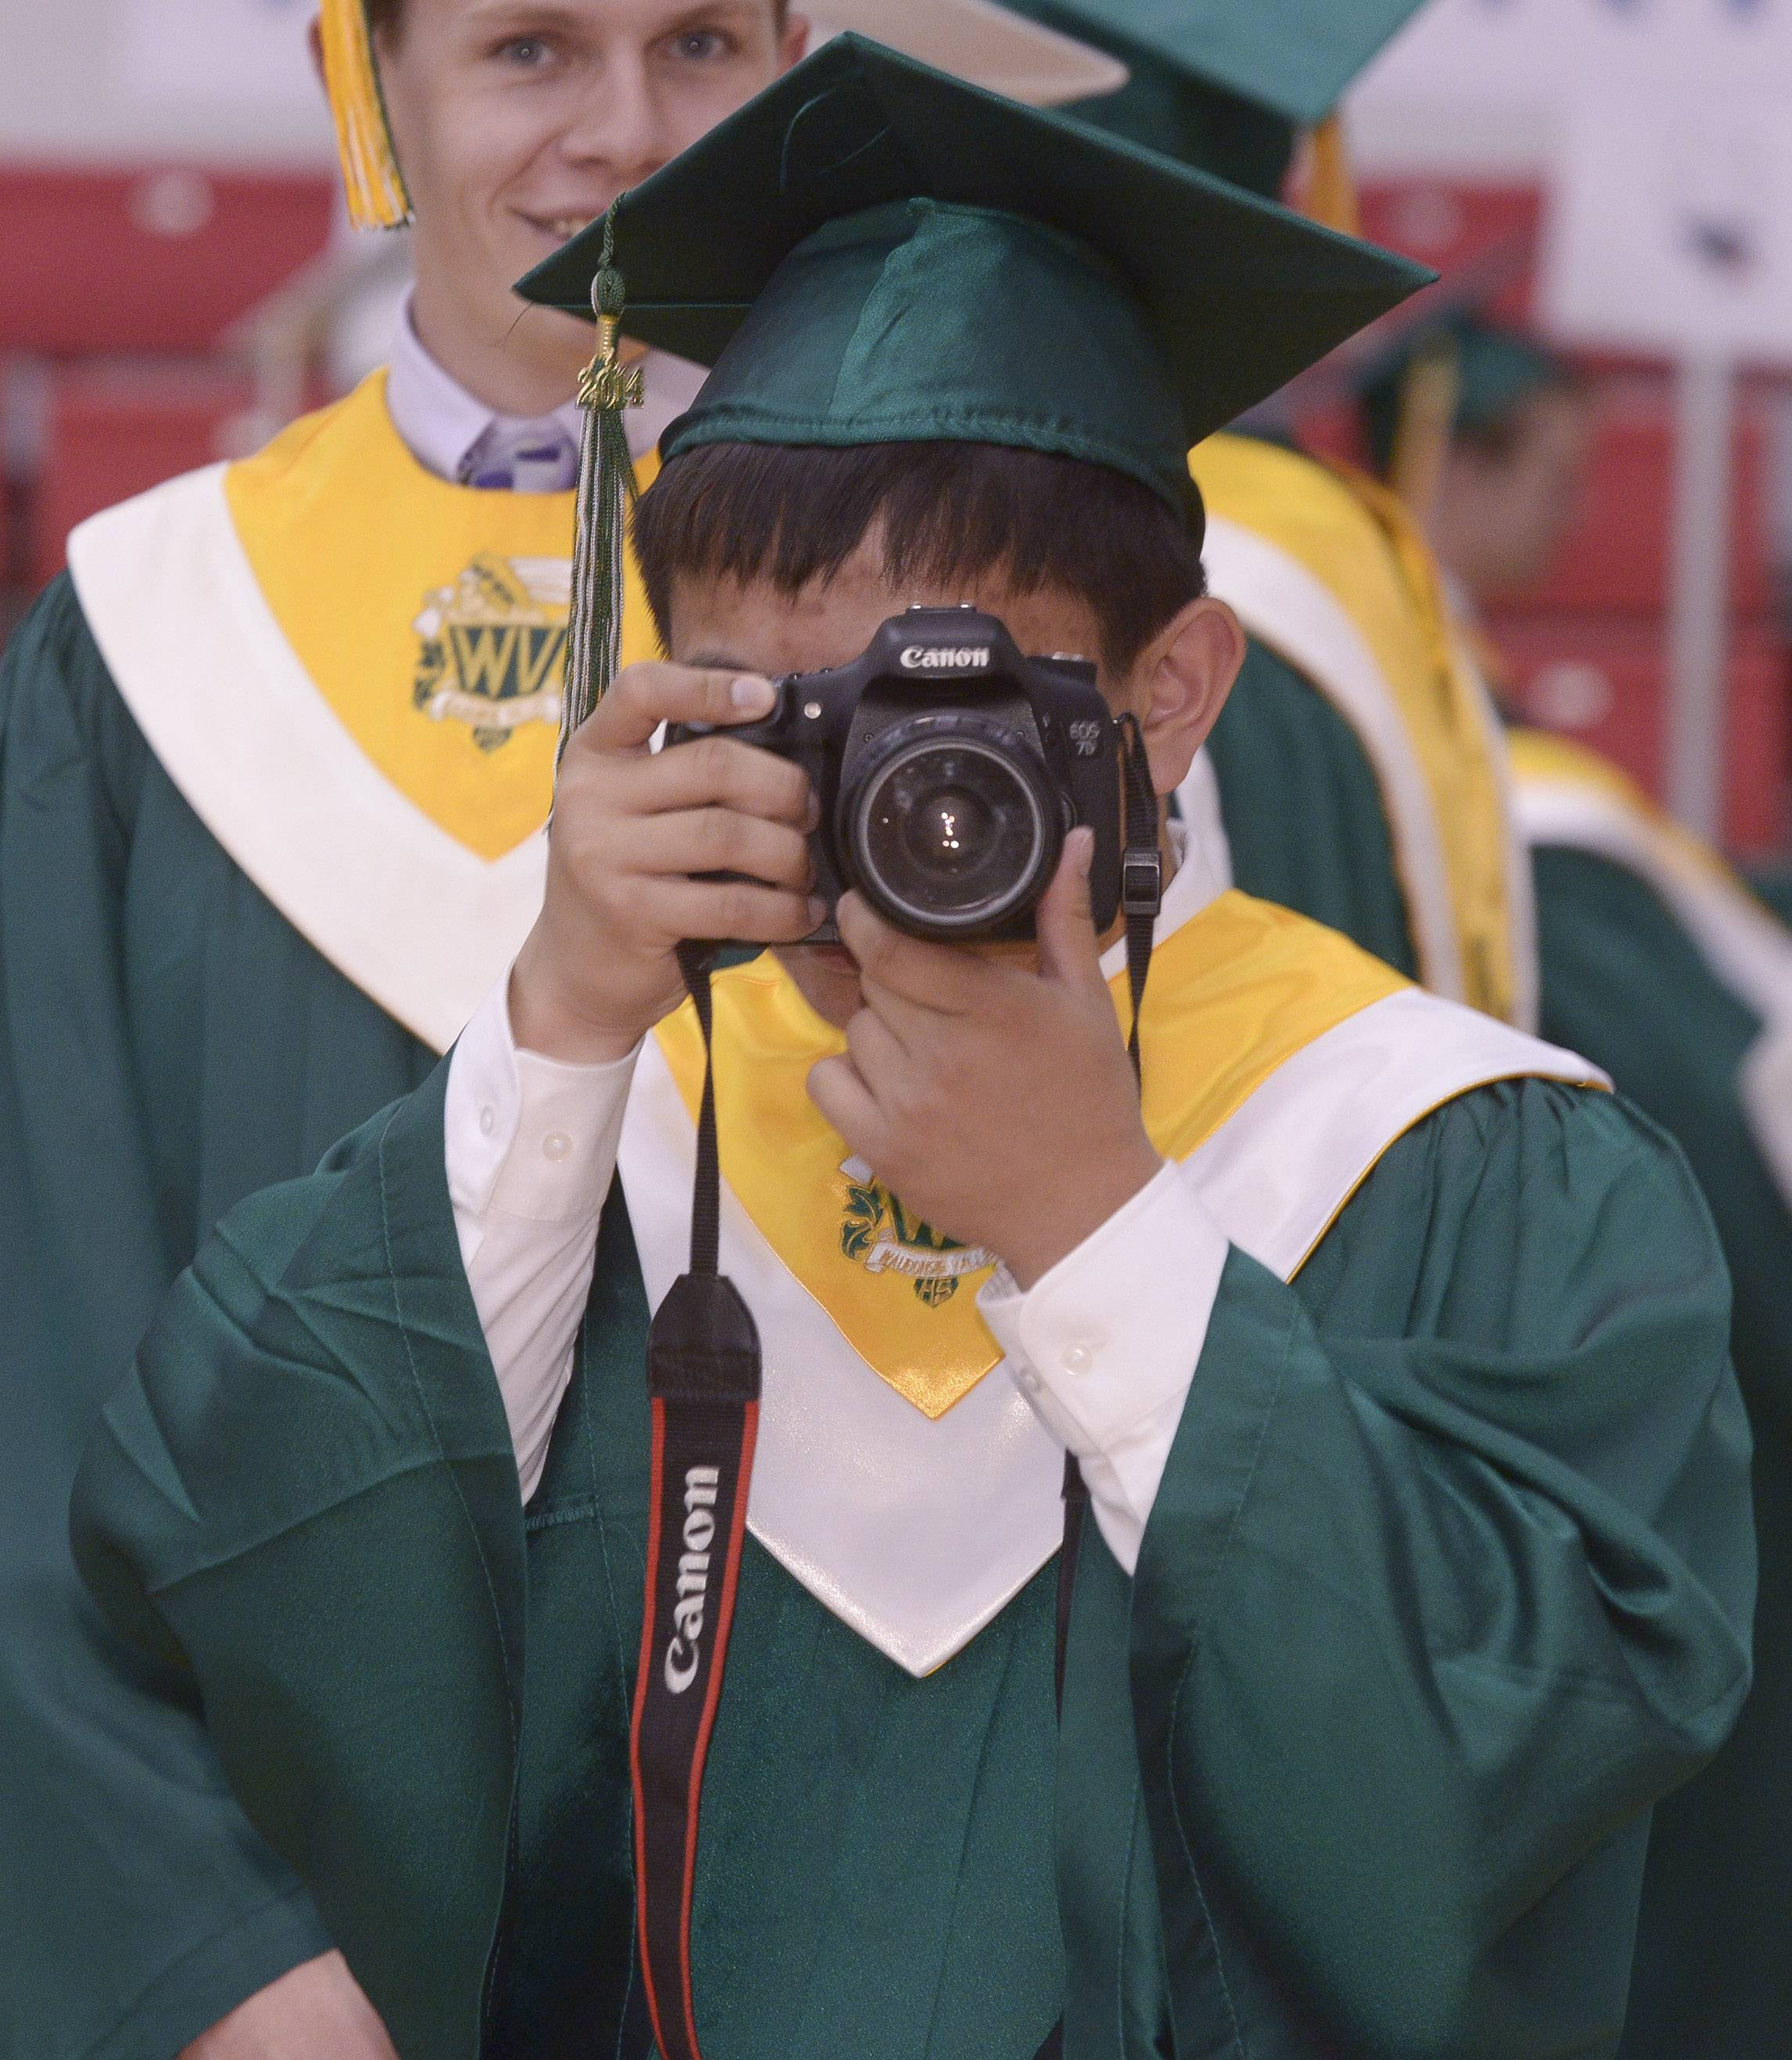 Unlike most of his classmates who use smartphones, Nathan Wang uses a real camera to capture images of his friends and classmates, before the start of the Waubonsie Valley High School graduation on Sunday, May 25 at NIU in DeKalb.